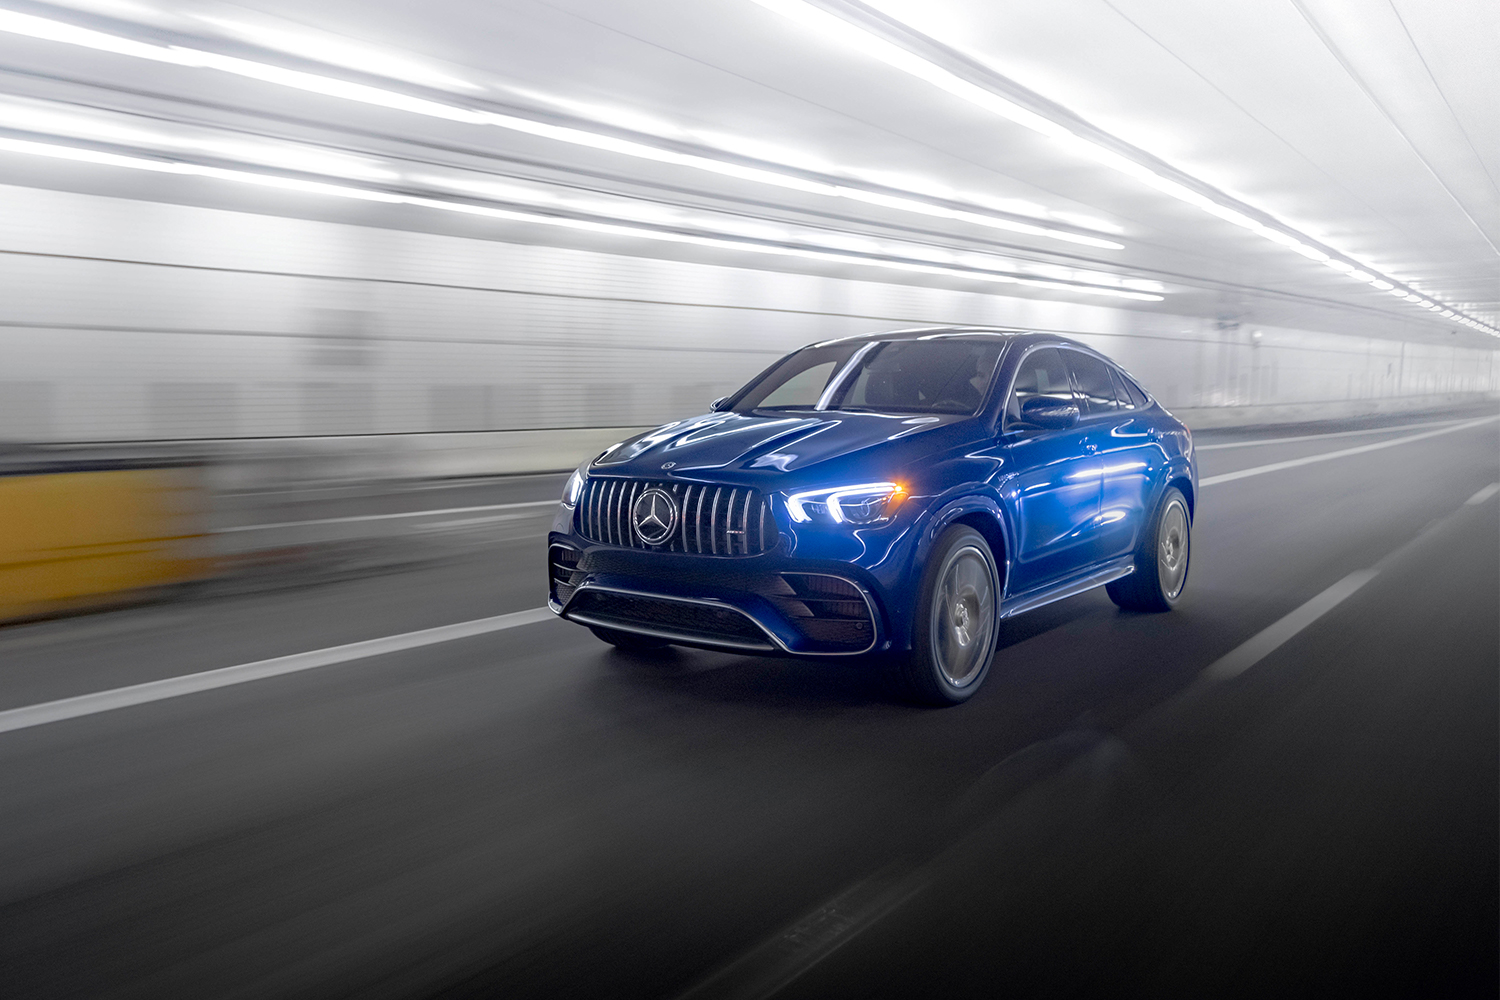 A blue Mercedes-AMG GLE 63 S Coupe driving through a lit tunnel